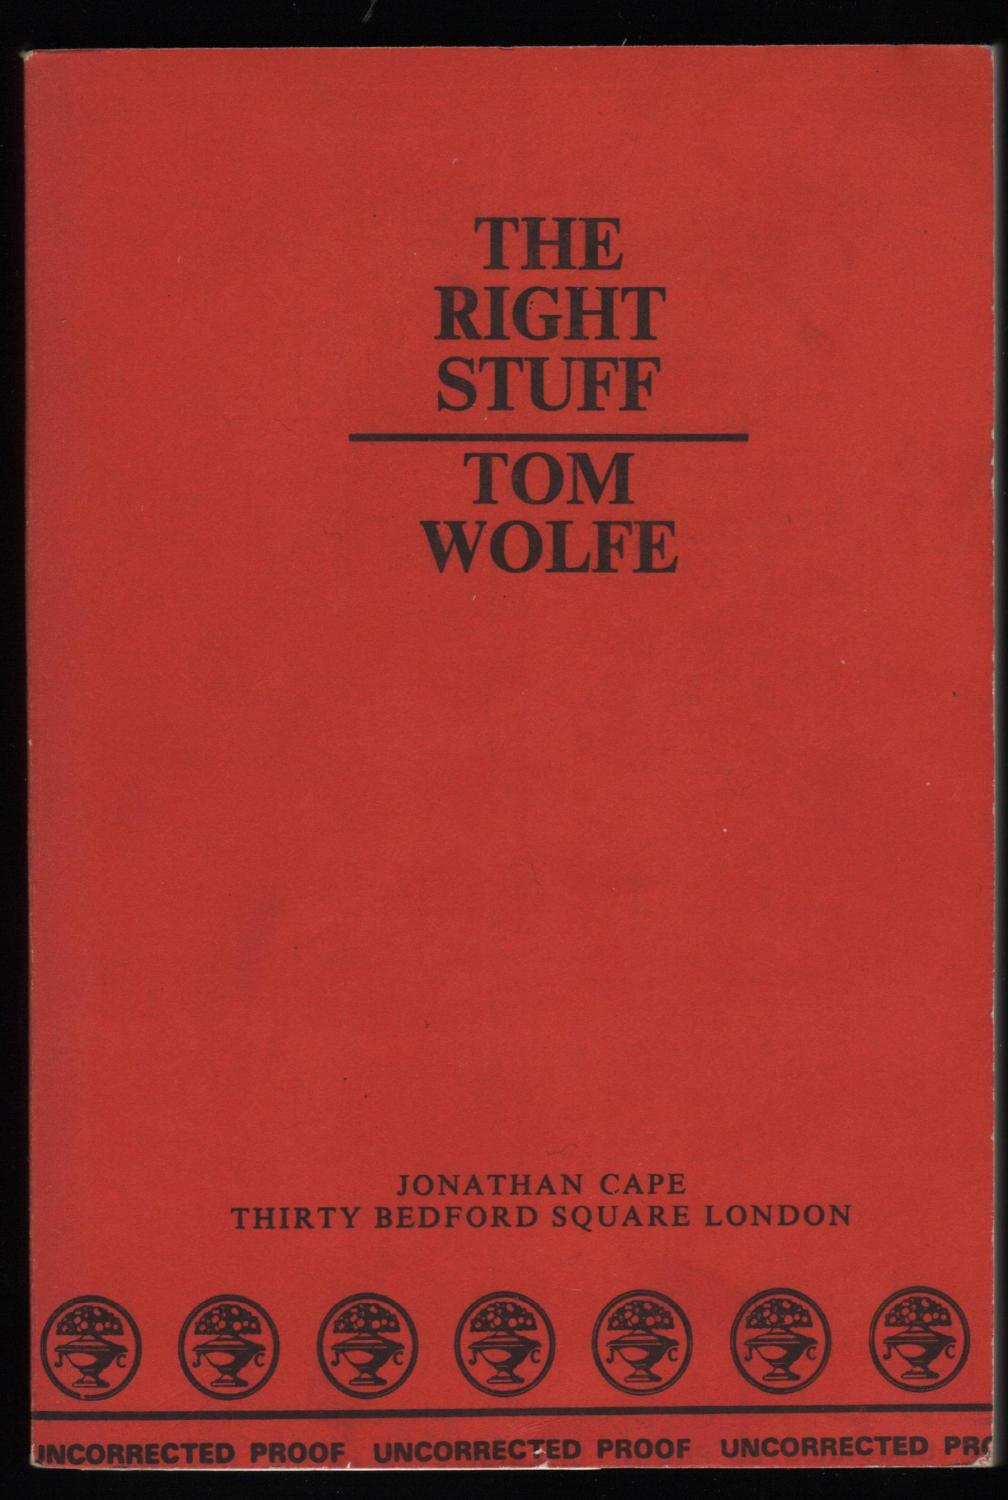 essays on the right stuff by tom wolfe Tom wolfe's the right stuff tom wolfe's the right stuff the right stuff is a book authored by tom wolfe published in 1979 it is as a result of extensive interviews with the astronauts, their colleagues, their wives and family after they were chosen to participate in the mercury project that would have placed man on the orbit of the earth.